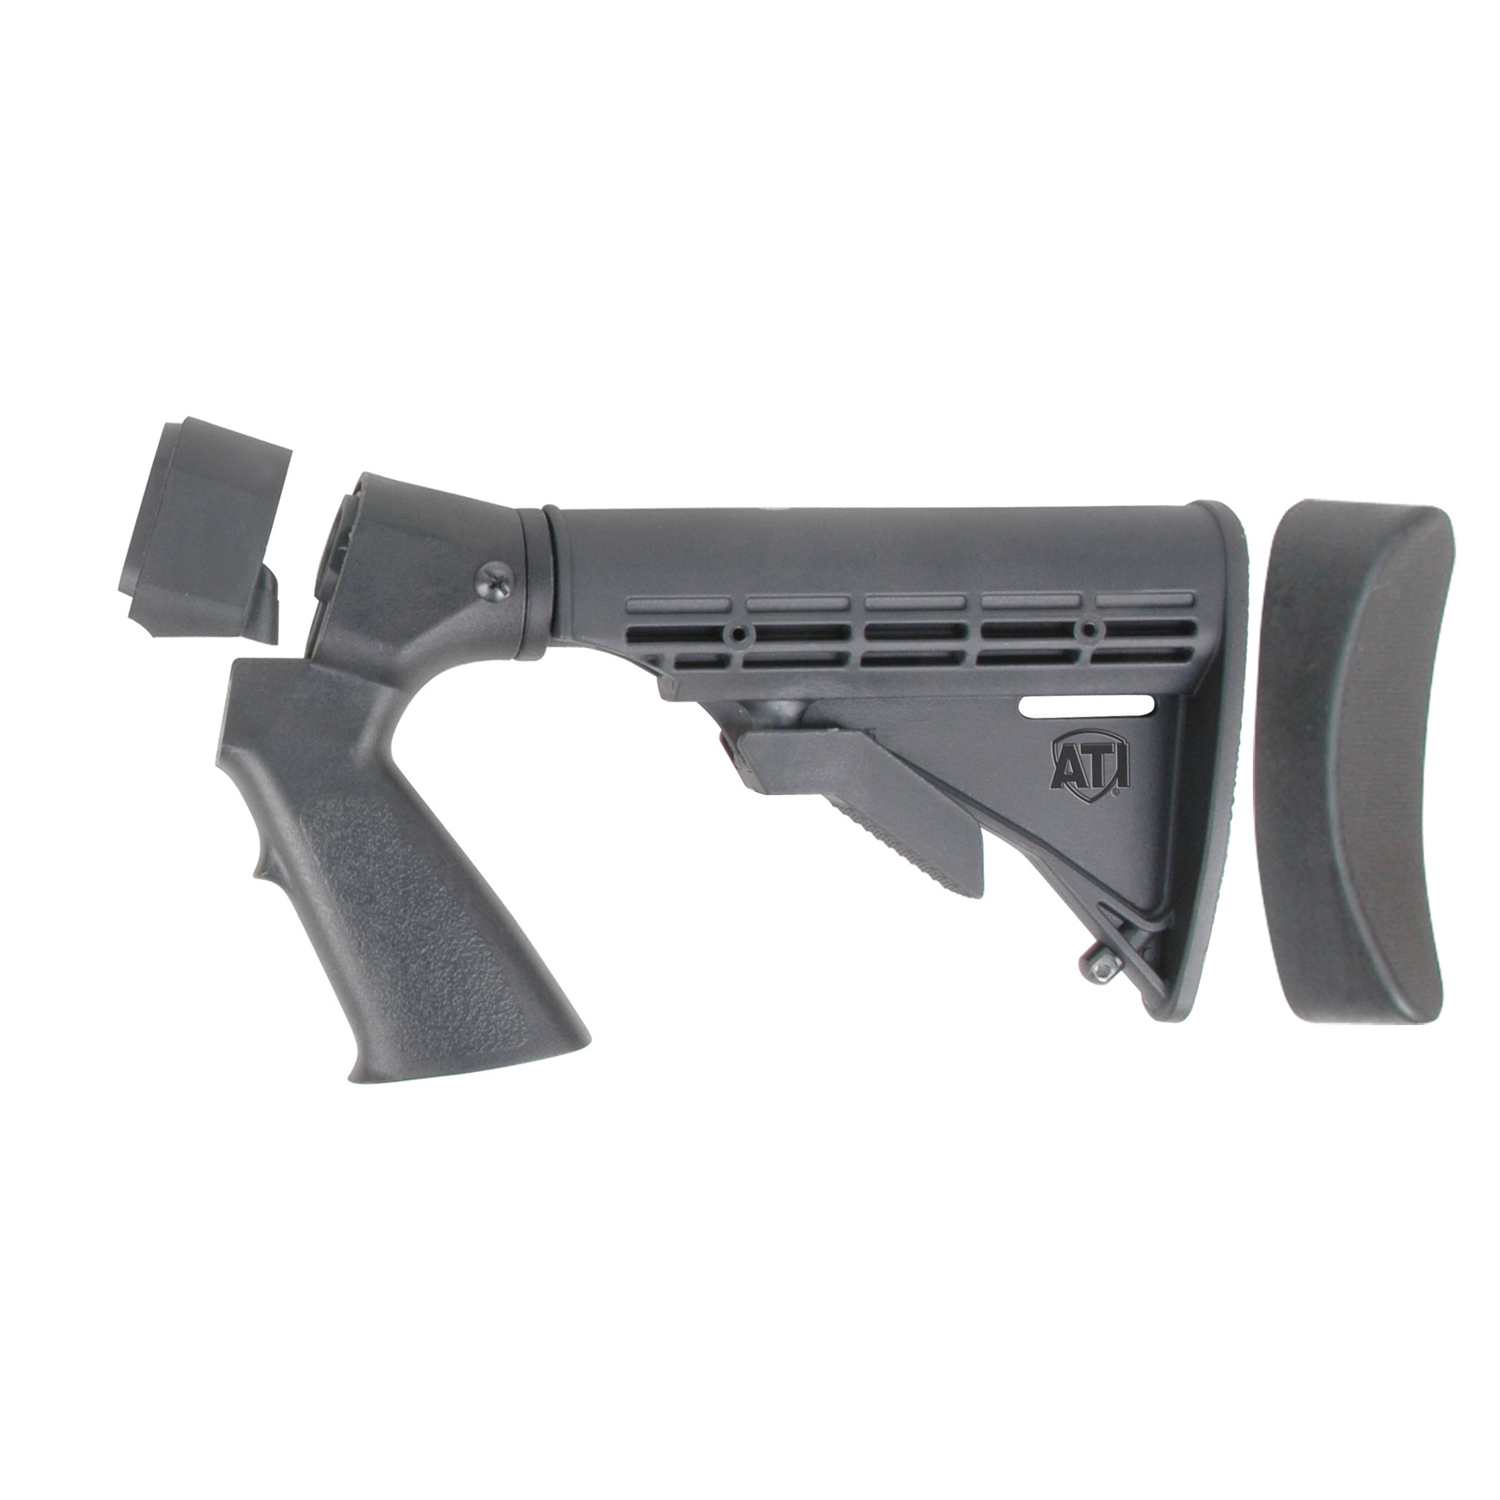 ATI ATI Remington 7600 Six Position Shotgun Pistol Grip Stock